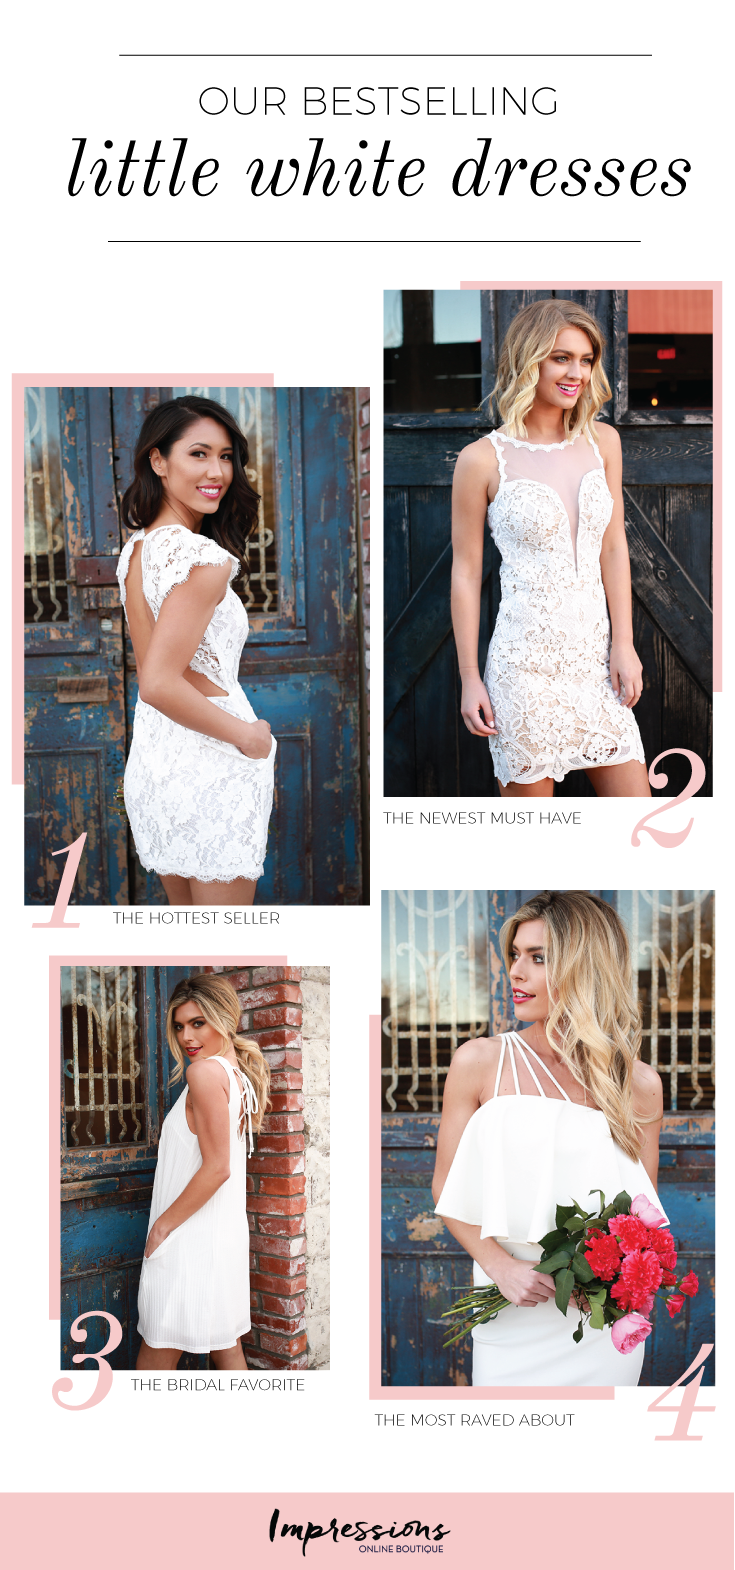 Cute wedding reception dresses for the bride  Pin by Lizzie Giannaula on stitch fix style  Pinterest  Wedding